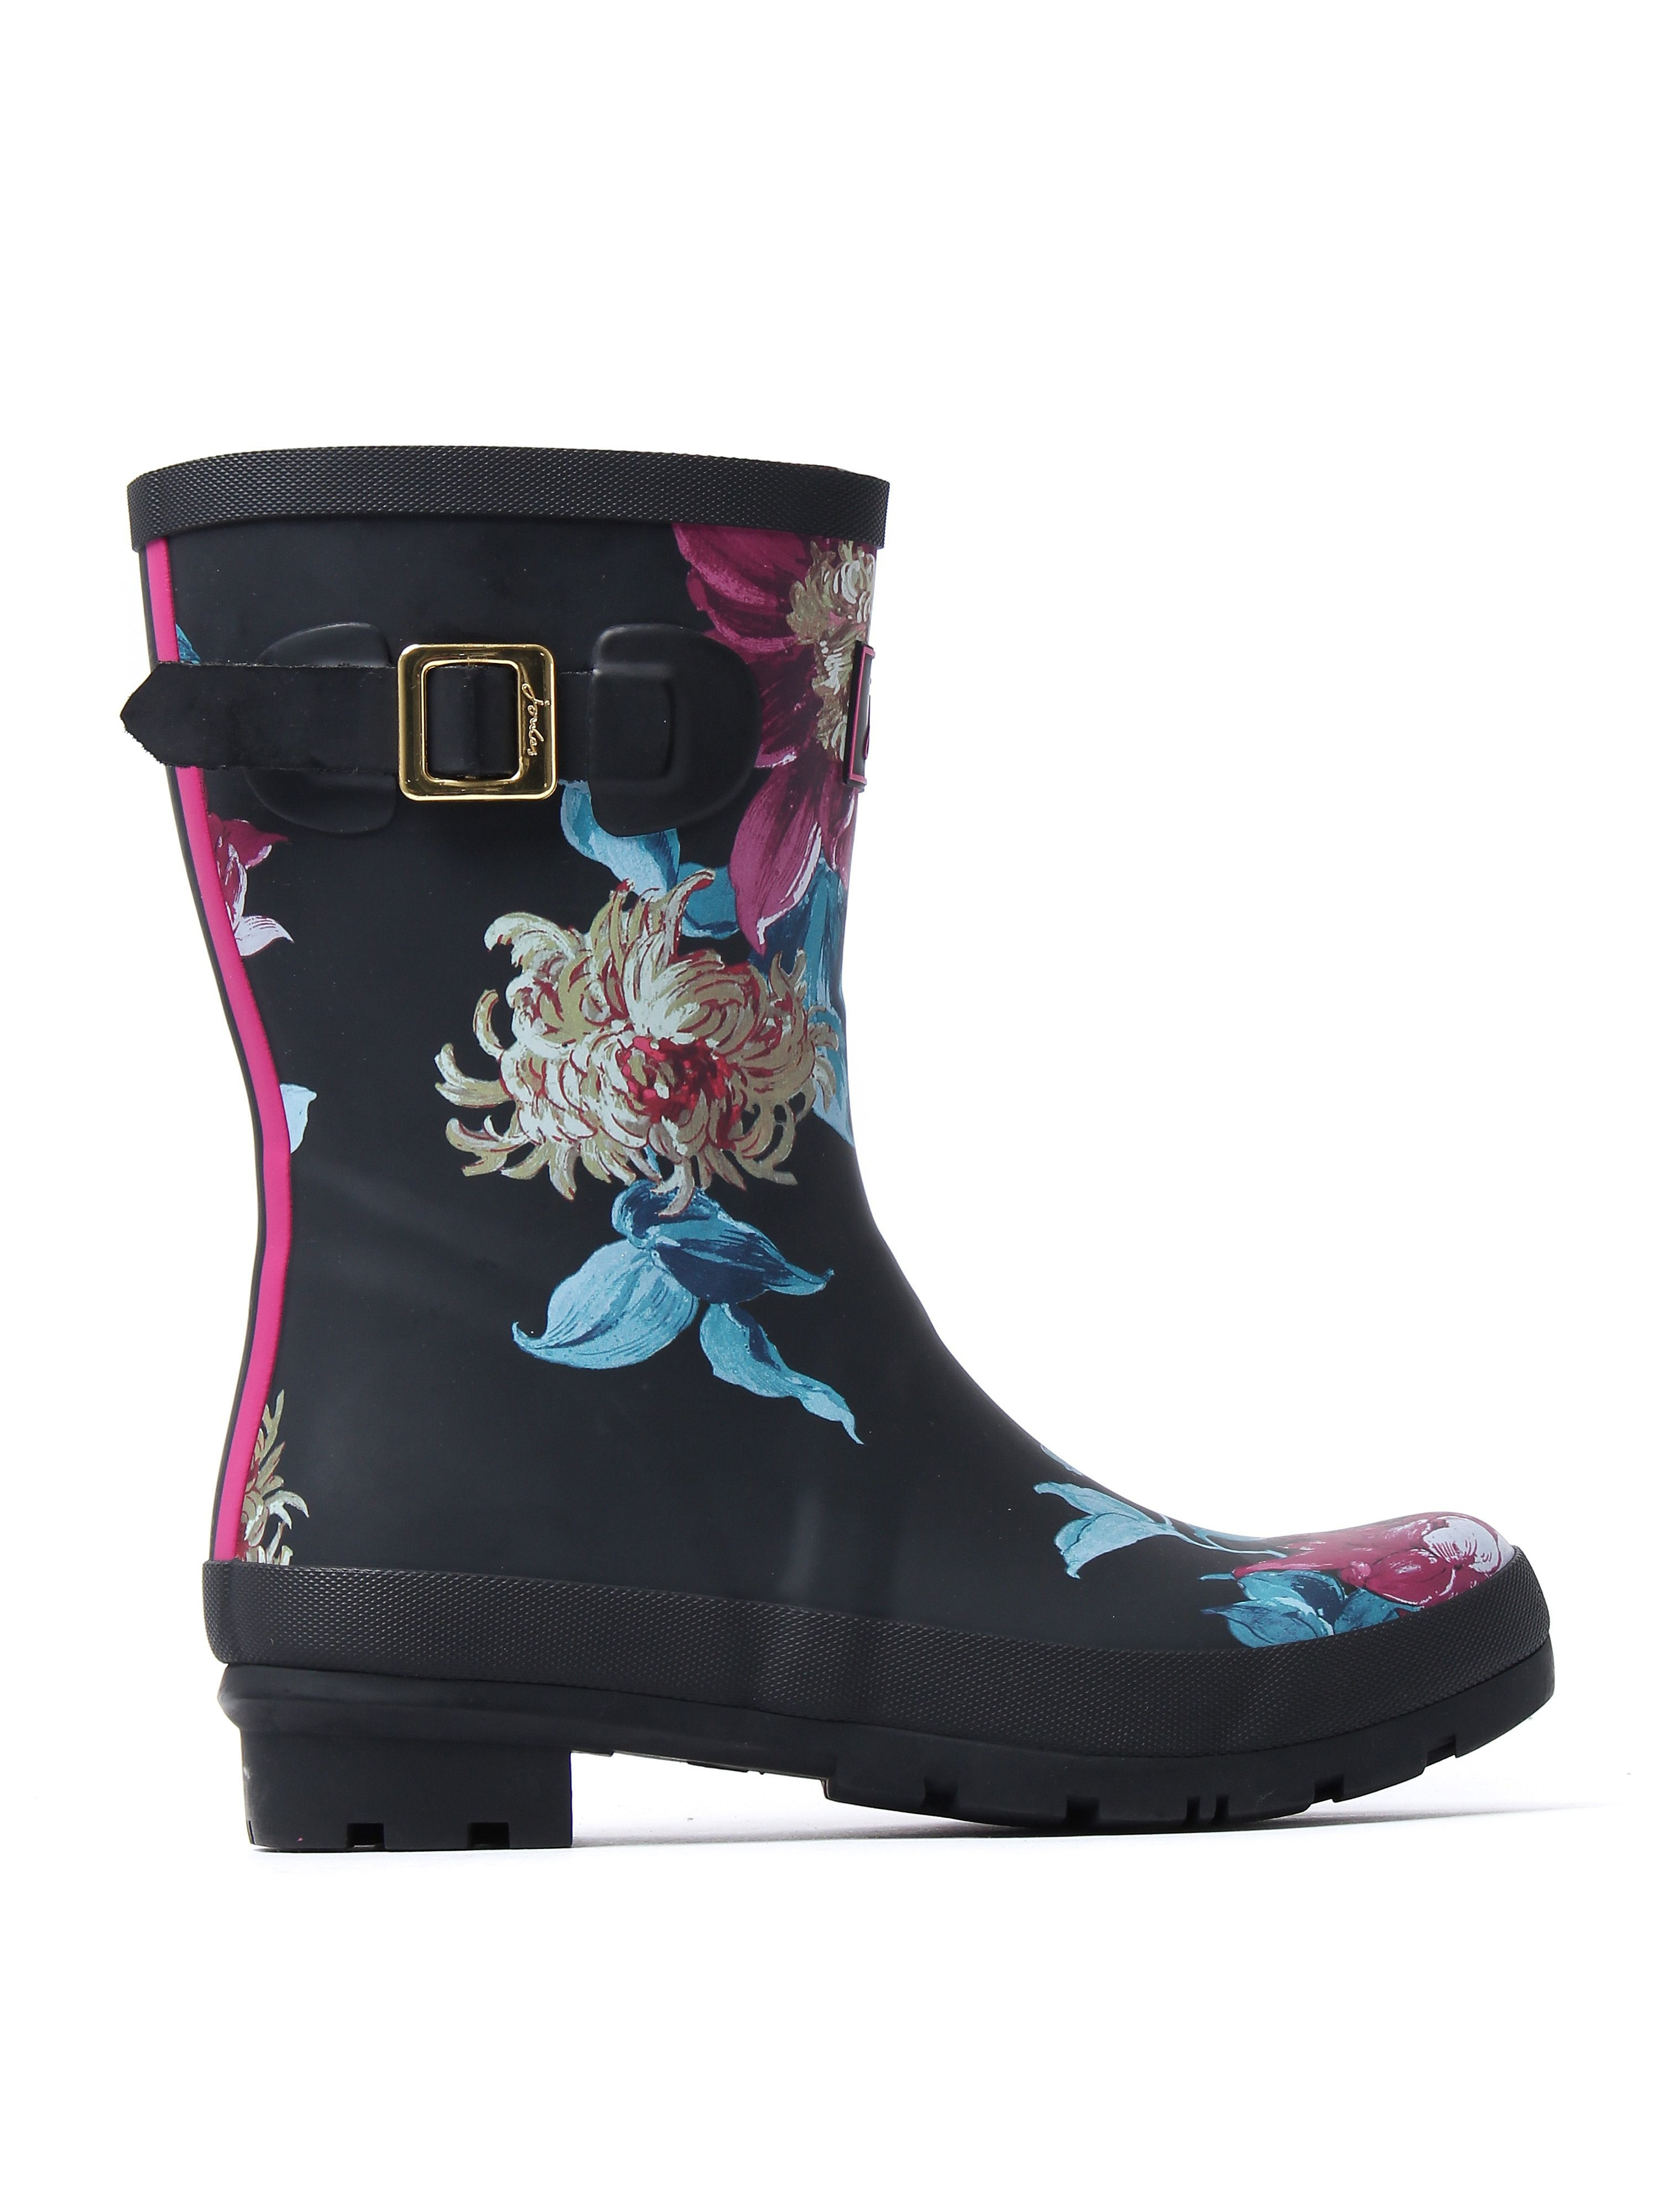 Joules Women's Molly Rubber Mid-Height Wellington Boots - Black Clematis